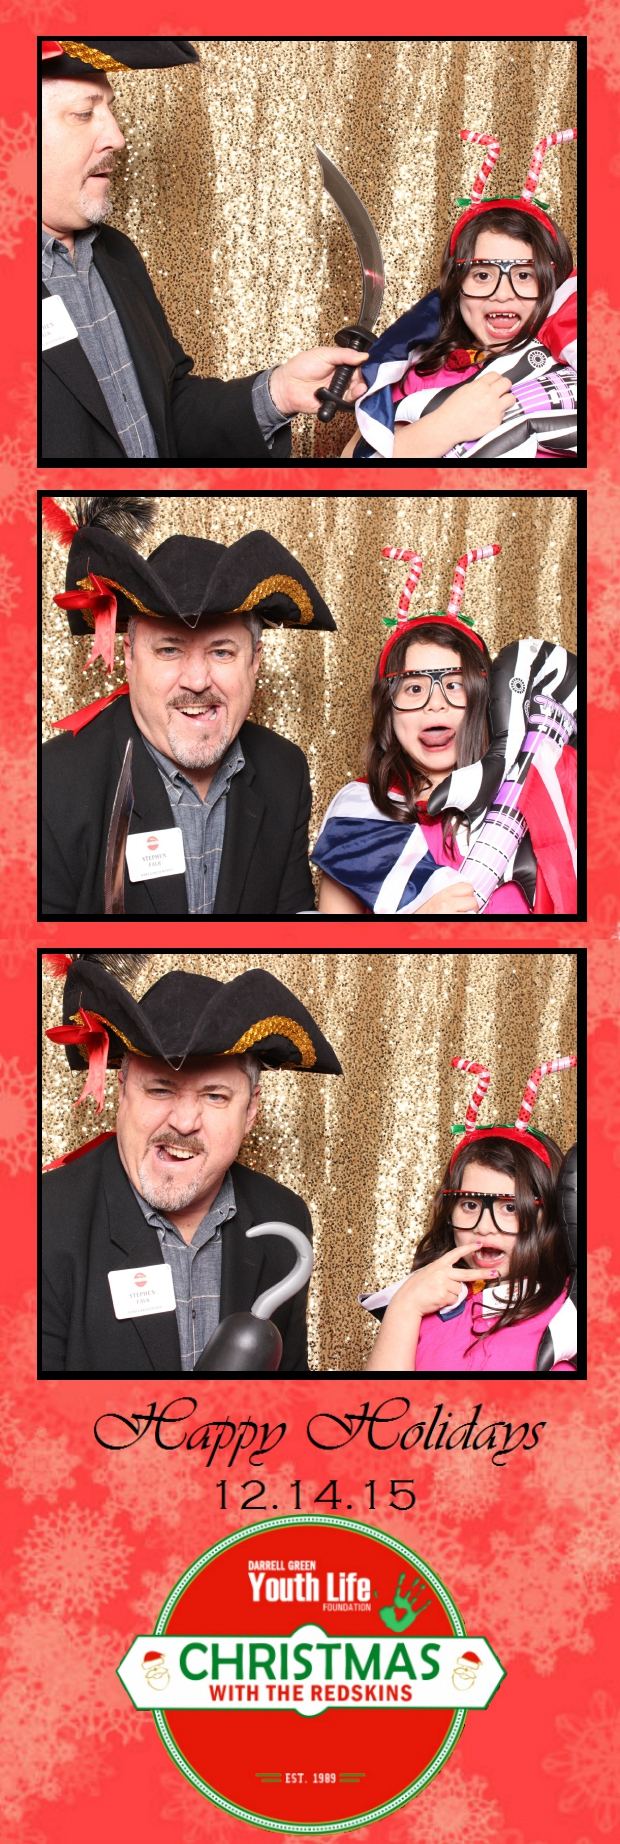 Guest House Events Photo Booth DGYLF Strips (40).jpg